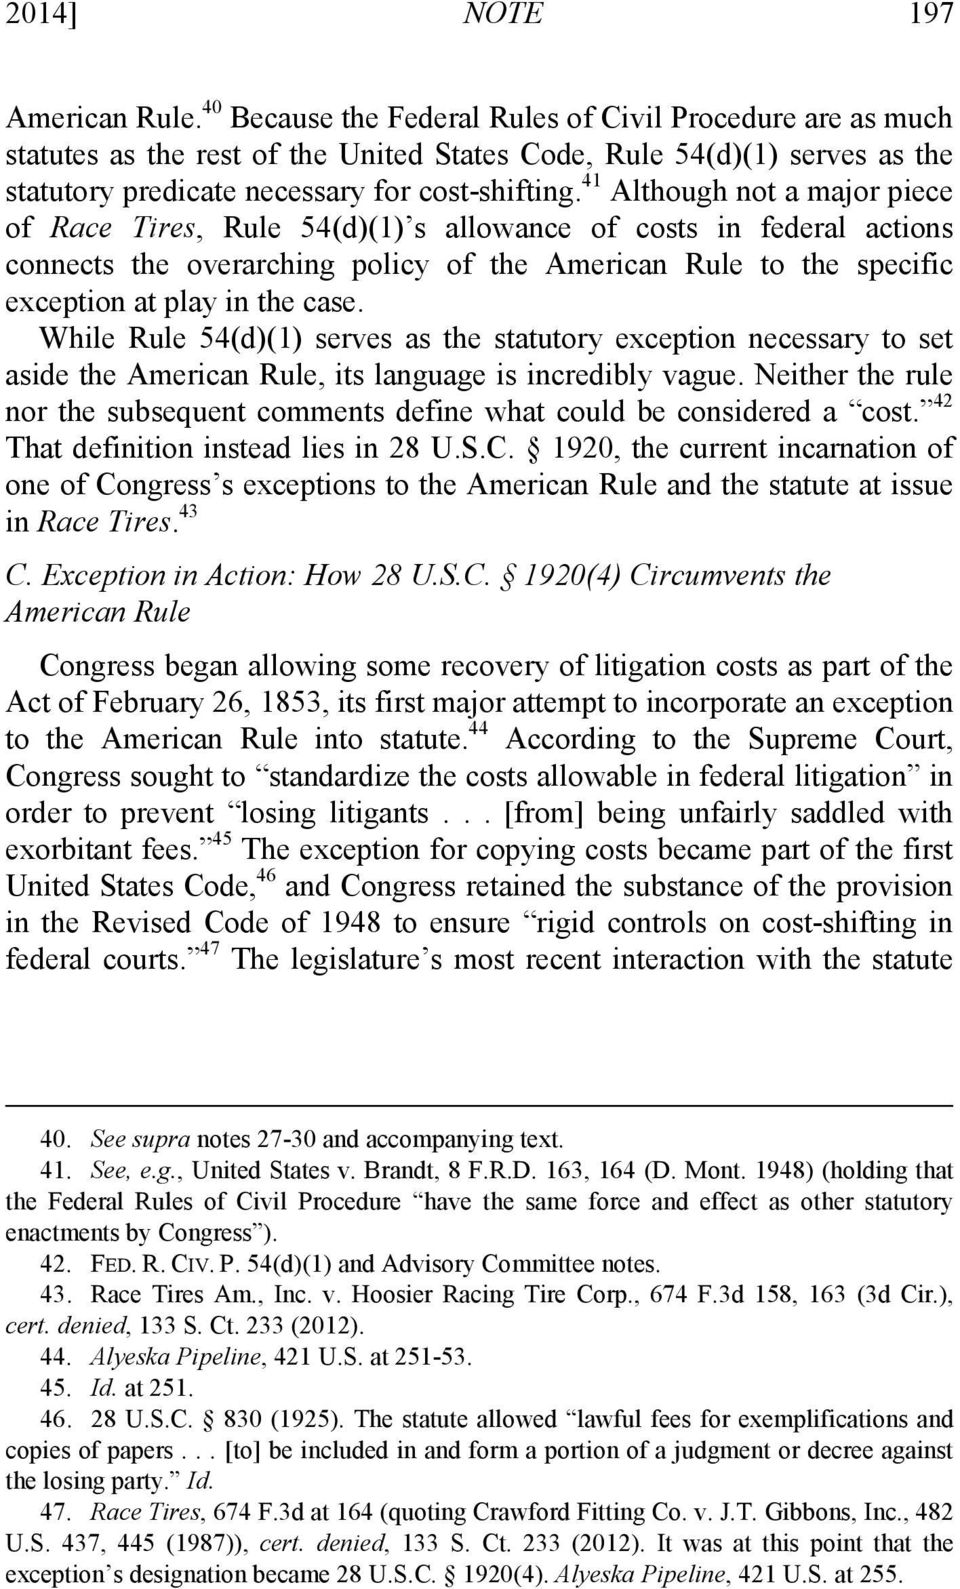 41 Although not a major piece of Race Tires, Rule 54(d)(1) s allowance of costs in federal actions connects the overarching policy of the American Rule to the specific exception at play in the case.